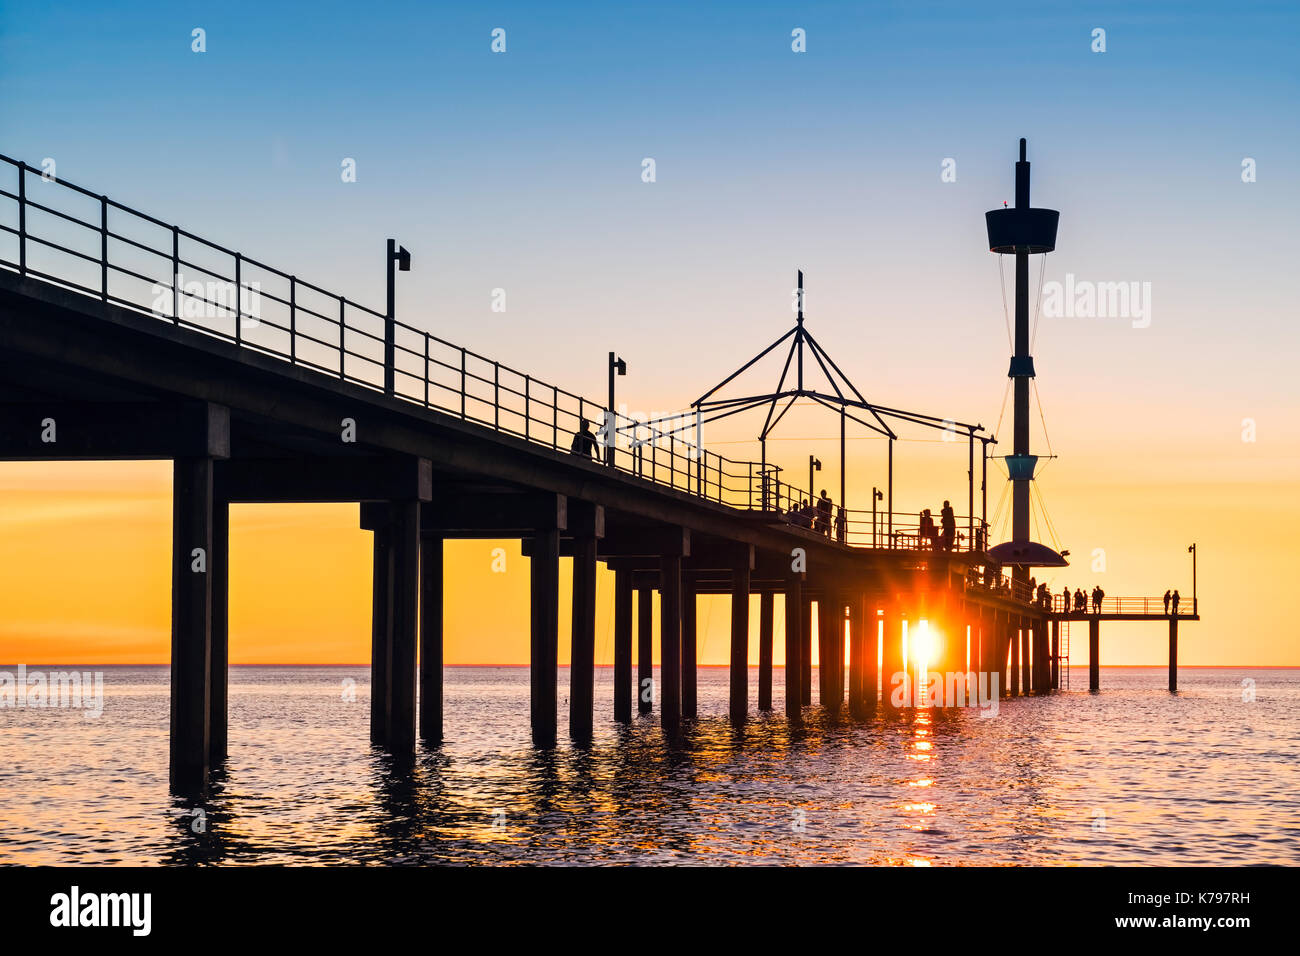 Brighton Beach pier with people at sunset, South Australia Stock Photo